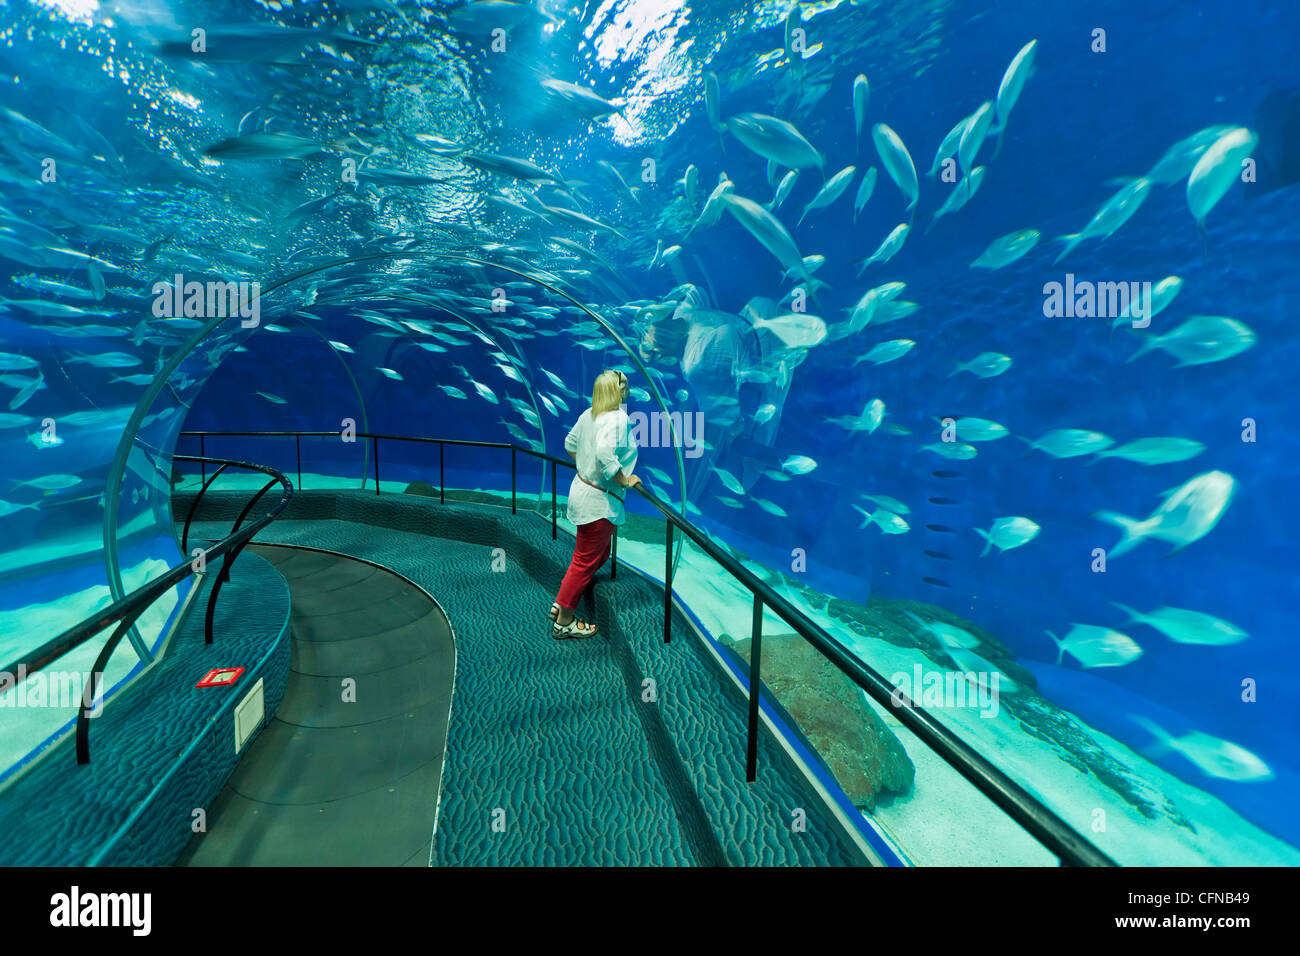 Female tourist at Ocean Aquarium, Shanghai, China, Asia - Stock Image